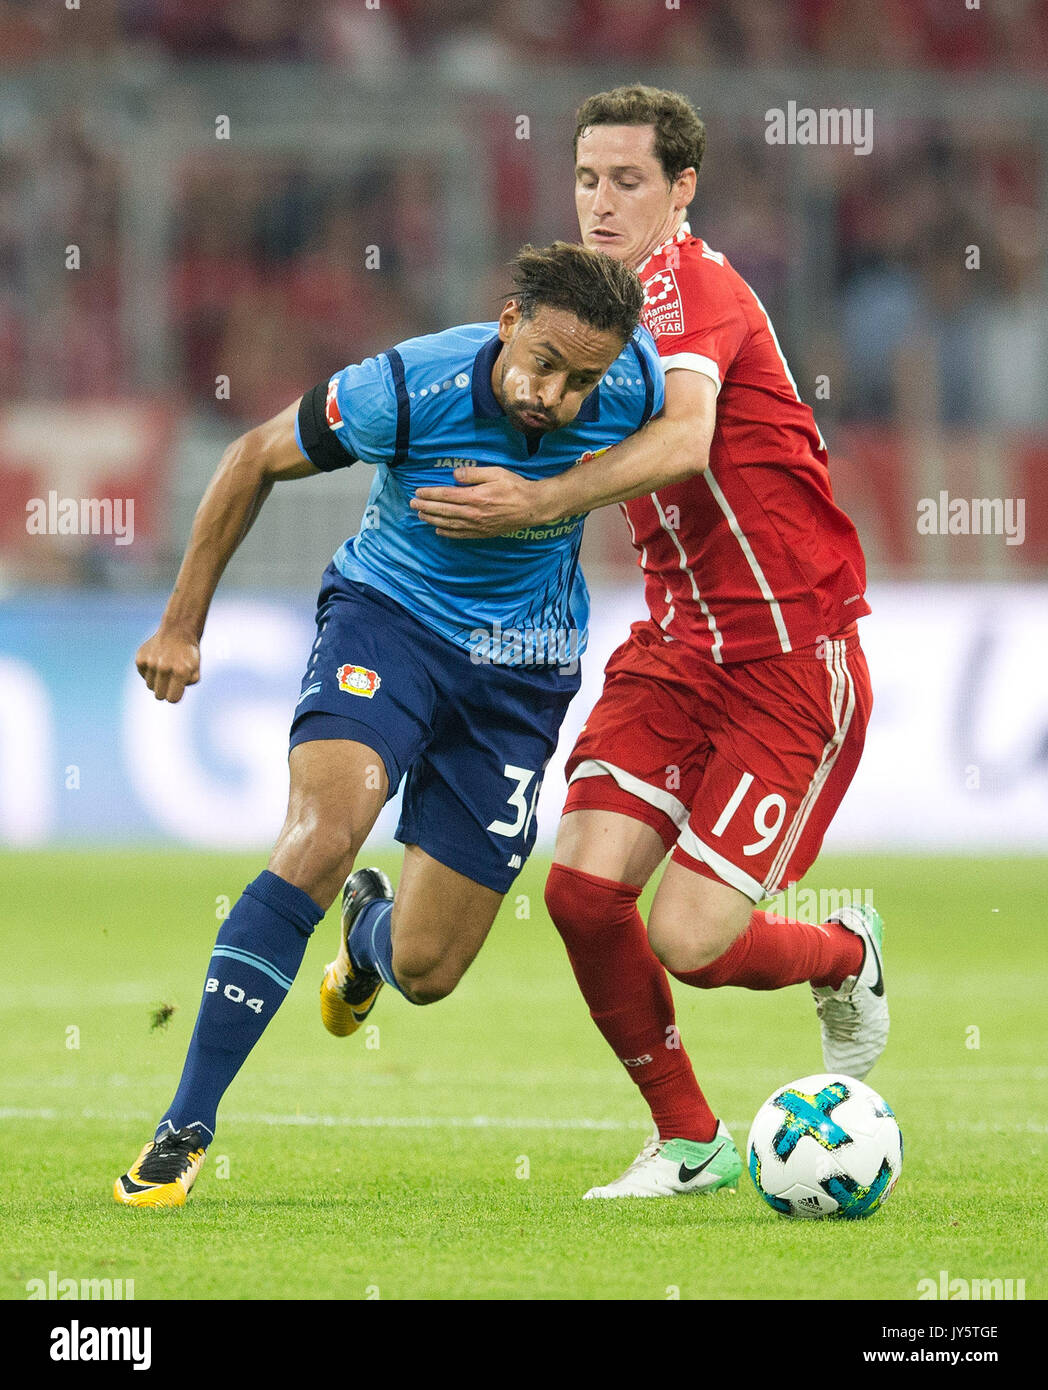 Deutschland. 18th Aug, 2017. vl. Karim BELLARABI (Leverkusen) im Zweikampf mit Sebastian RUDY (FC Bayern) GES/ Fussball/ 1. Bundesliga: FC Bayern Munich - Bayer 04 Leverkusen, 18.08.2017 -- Football/ Soccer 1st. German Bundesliga Division: Bavaria Munich vs Bayer 04 Leverkusen, Munich, August 18, 2017 | Verwendung weltweit Credit: dpa/Alamy Live News - Stock Image